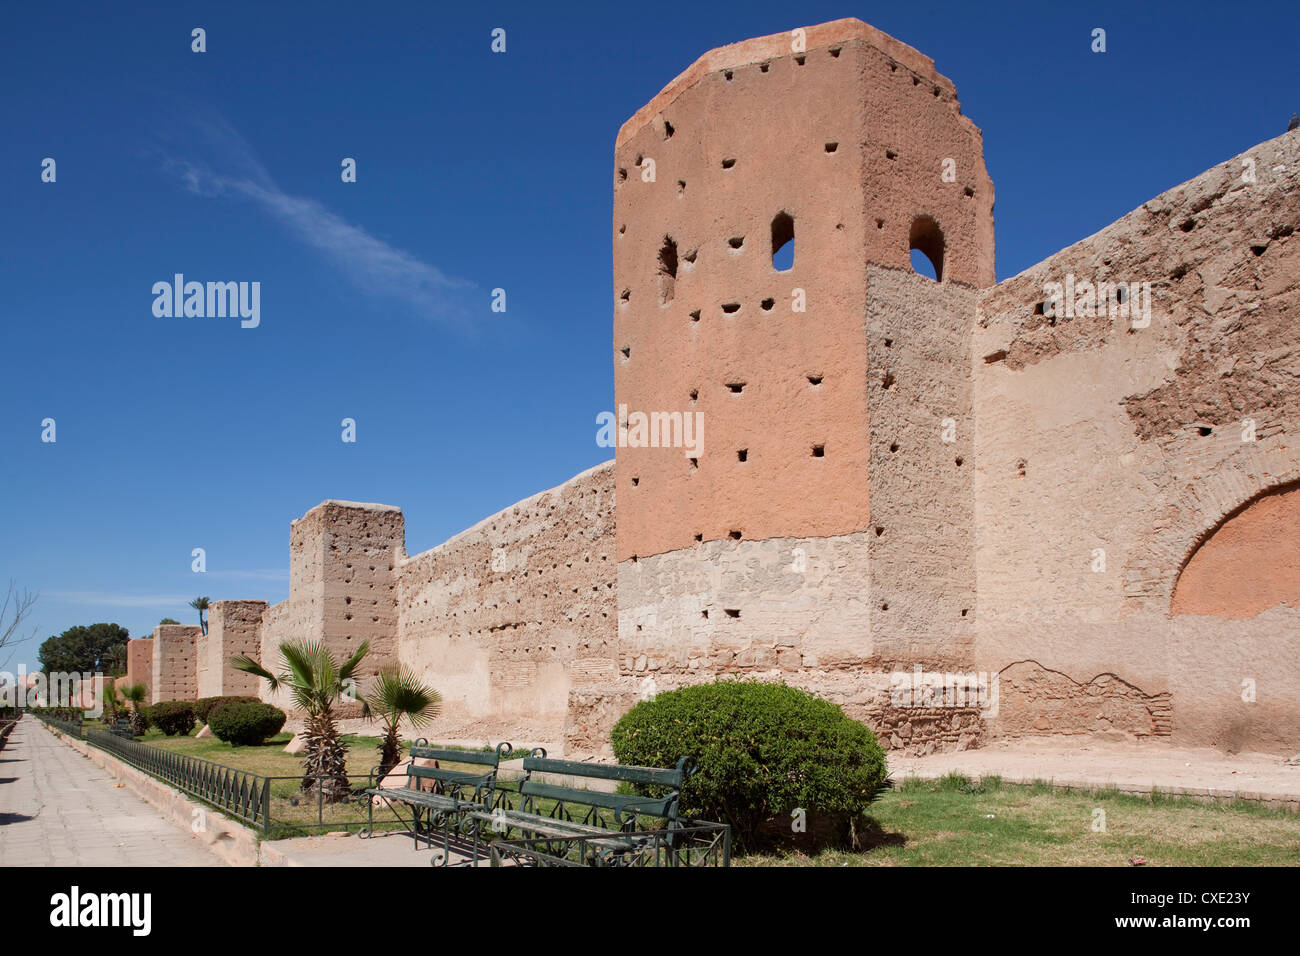 Walls of the Old and Medina, Marrakesh, Morocco, North Africa, Africa - Stock Image